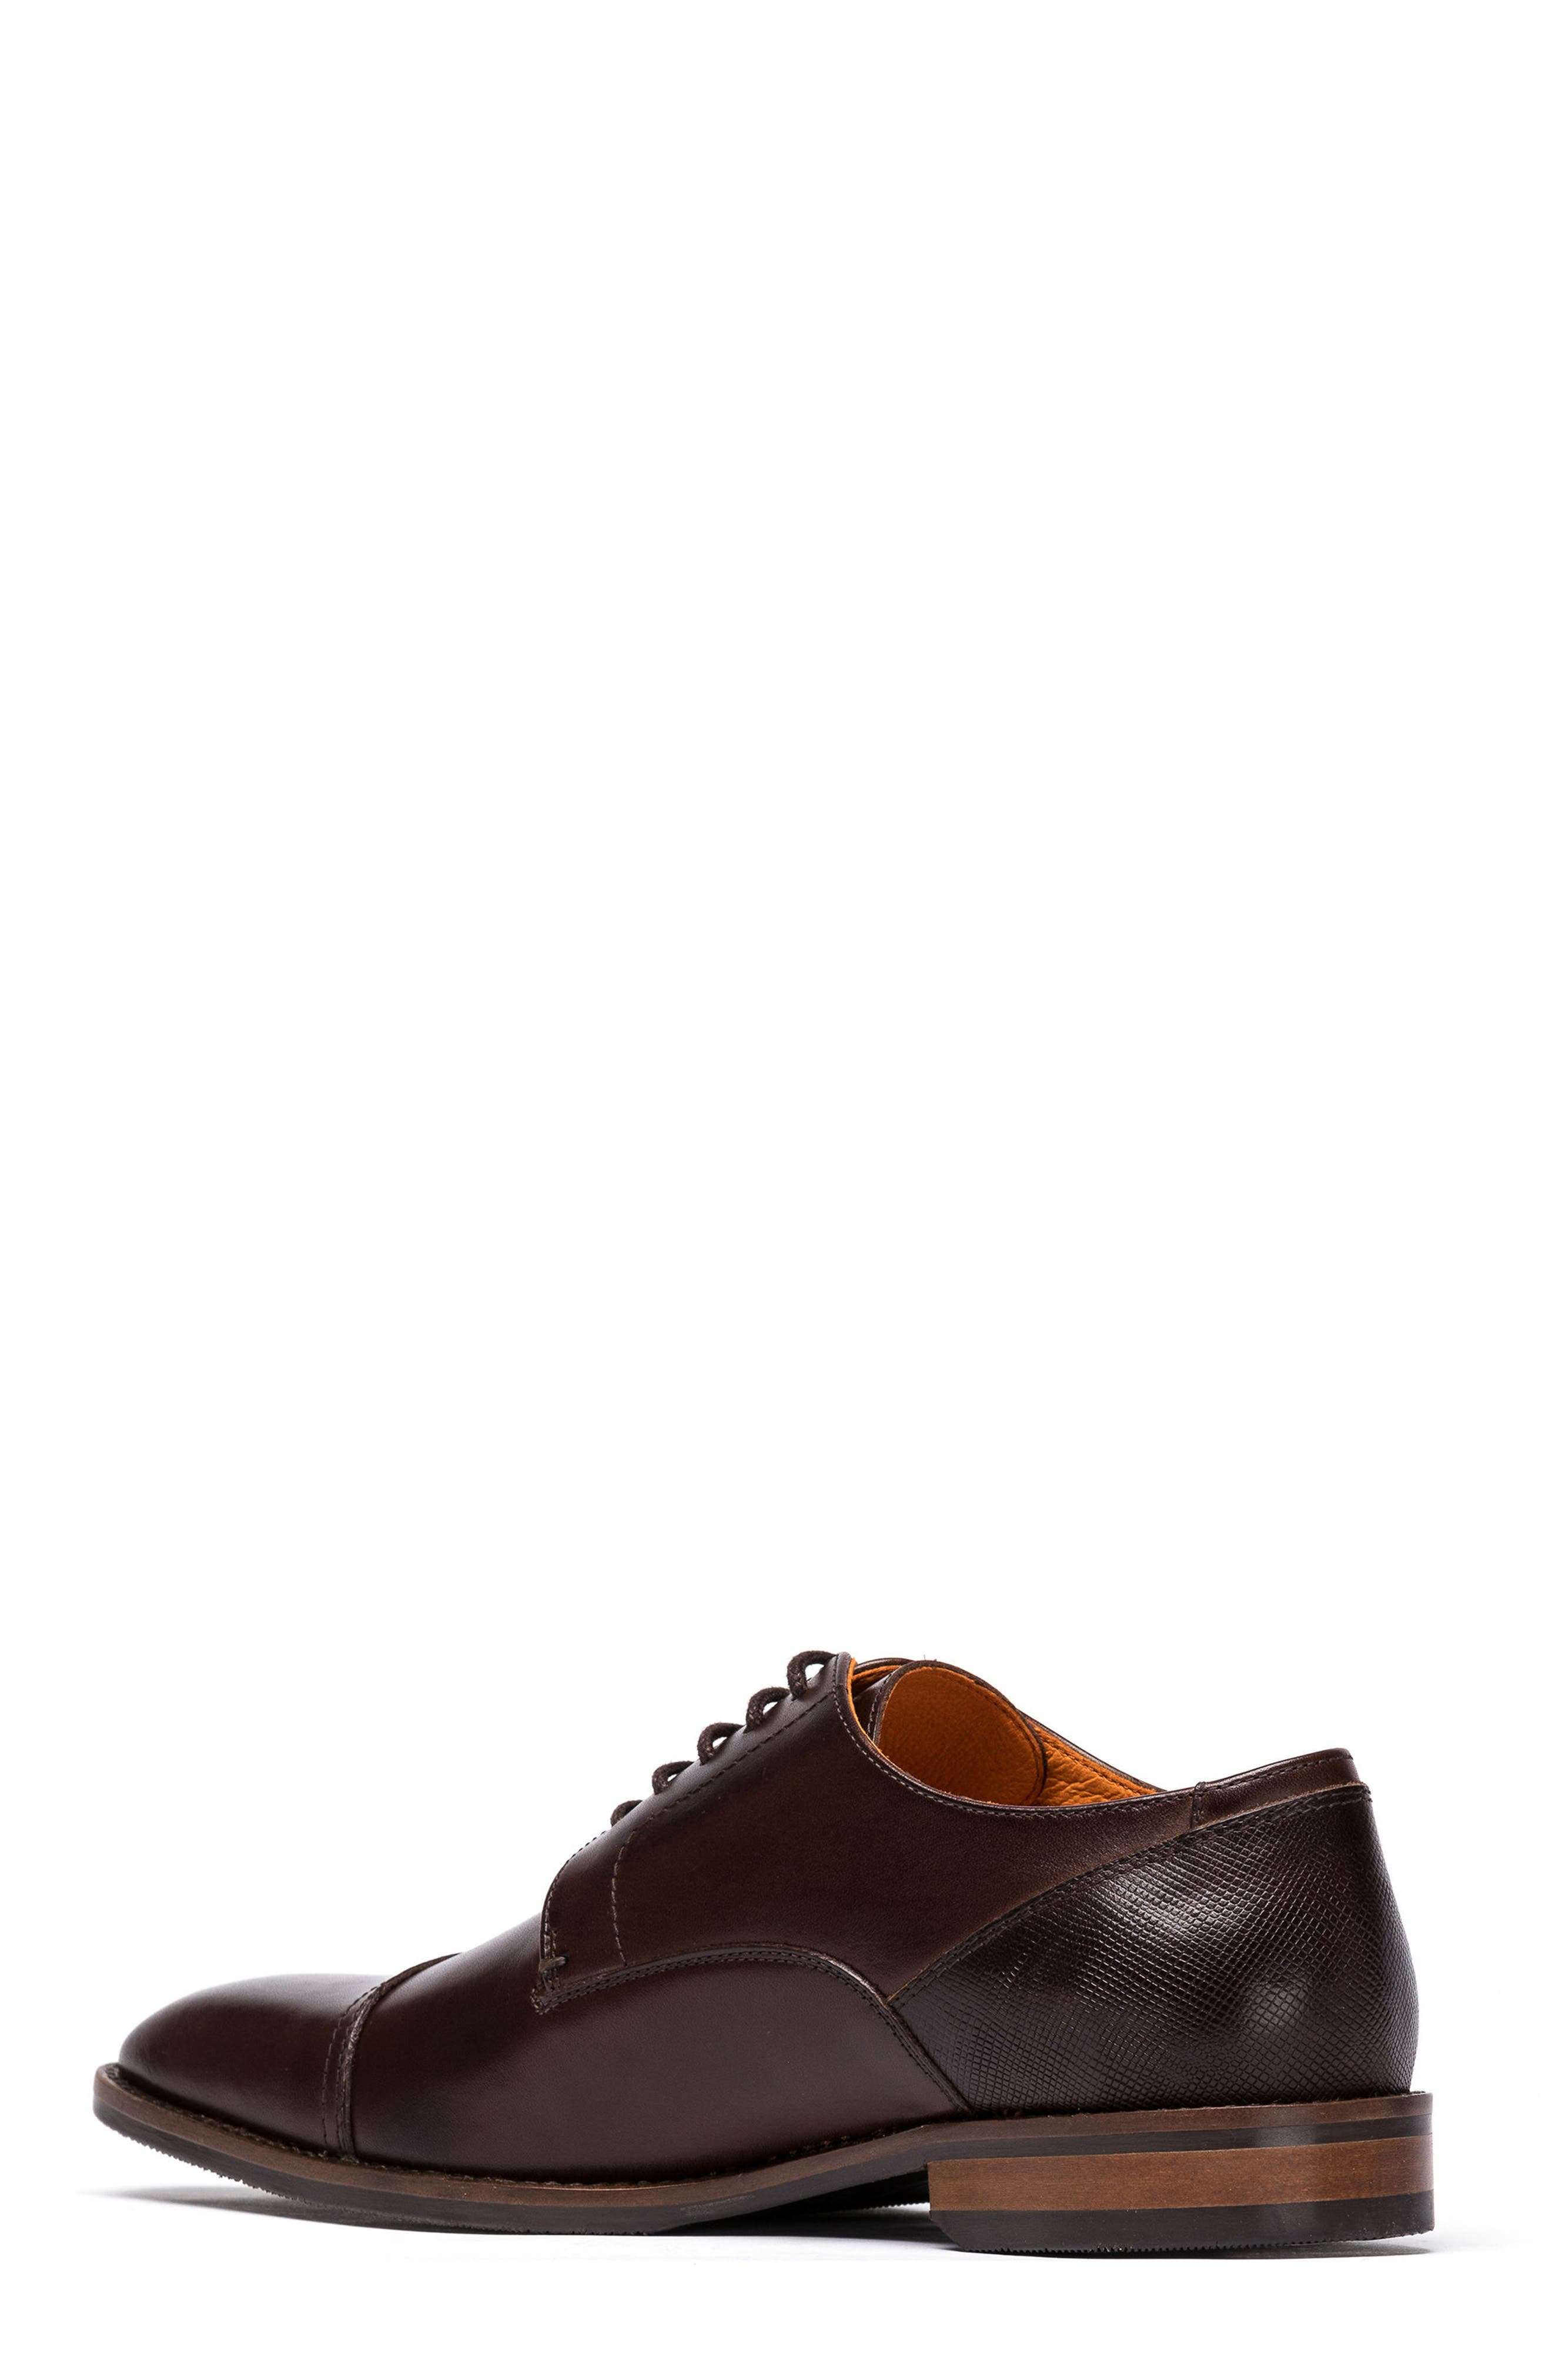 Rodd & Gunn Men's Franklin Cap Toe Derby aXwIA